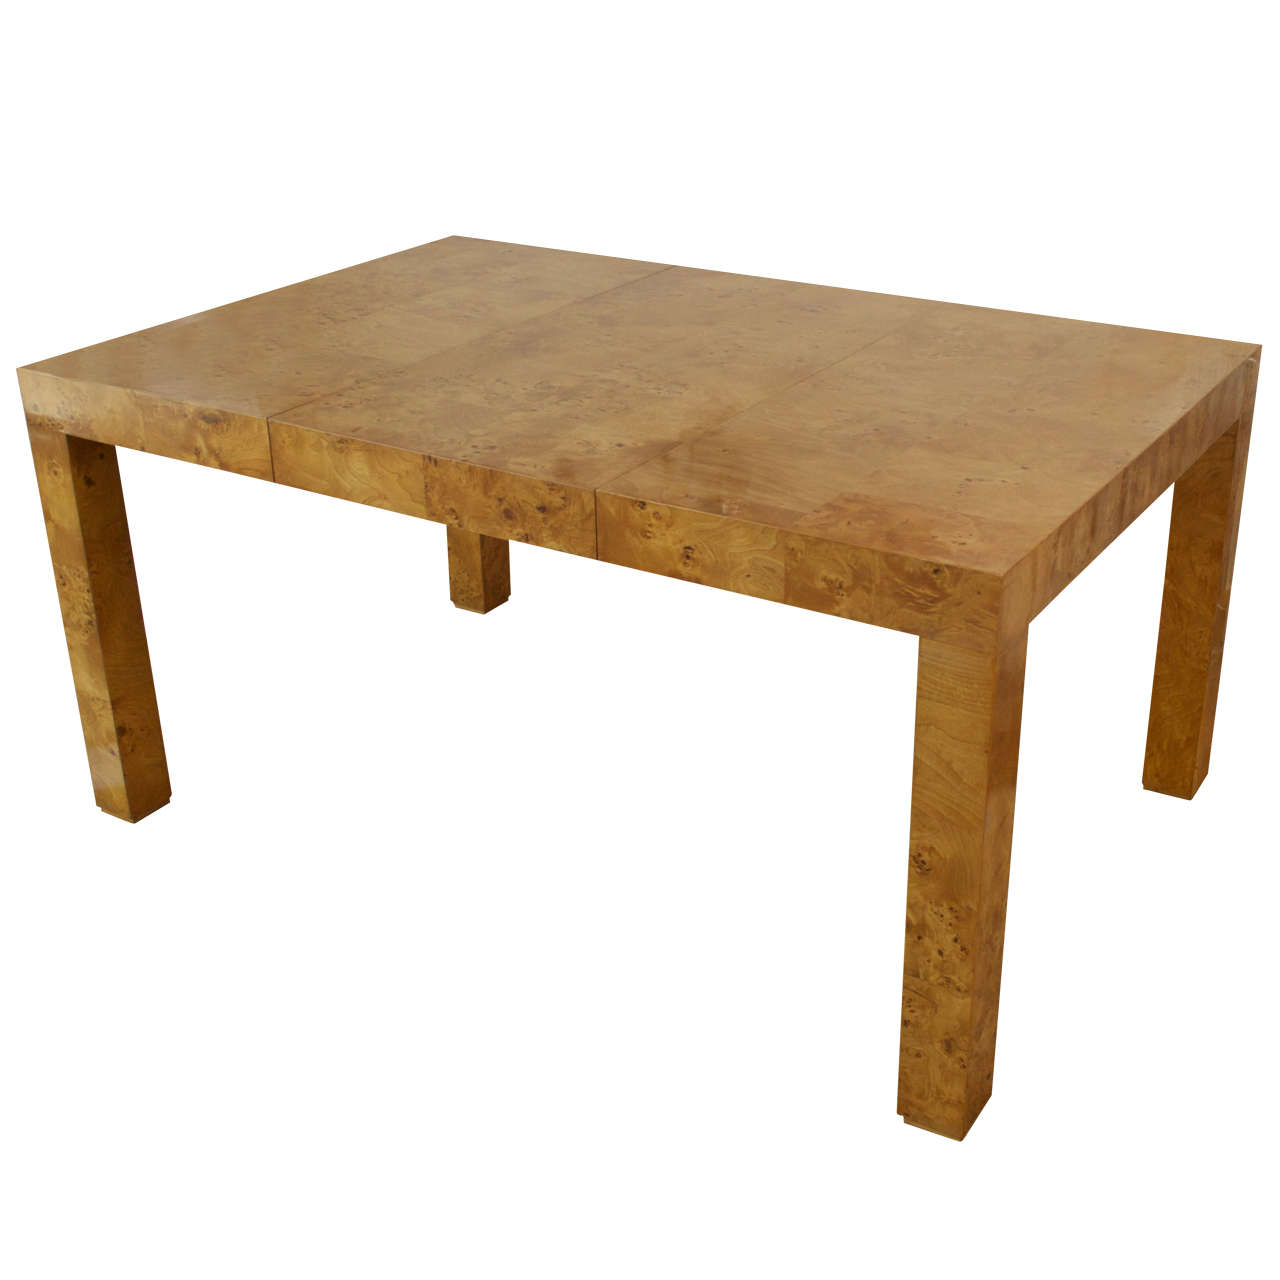 Milo Baughman Olive Wood Dining Table at 1stdibs